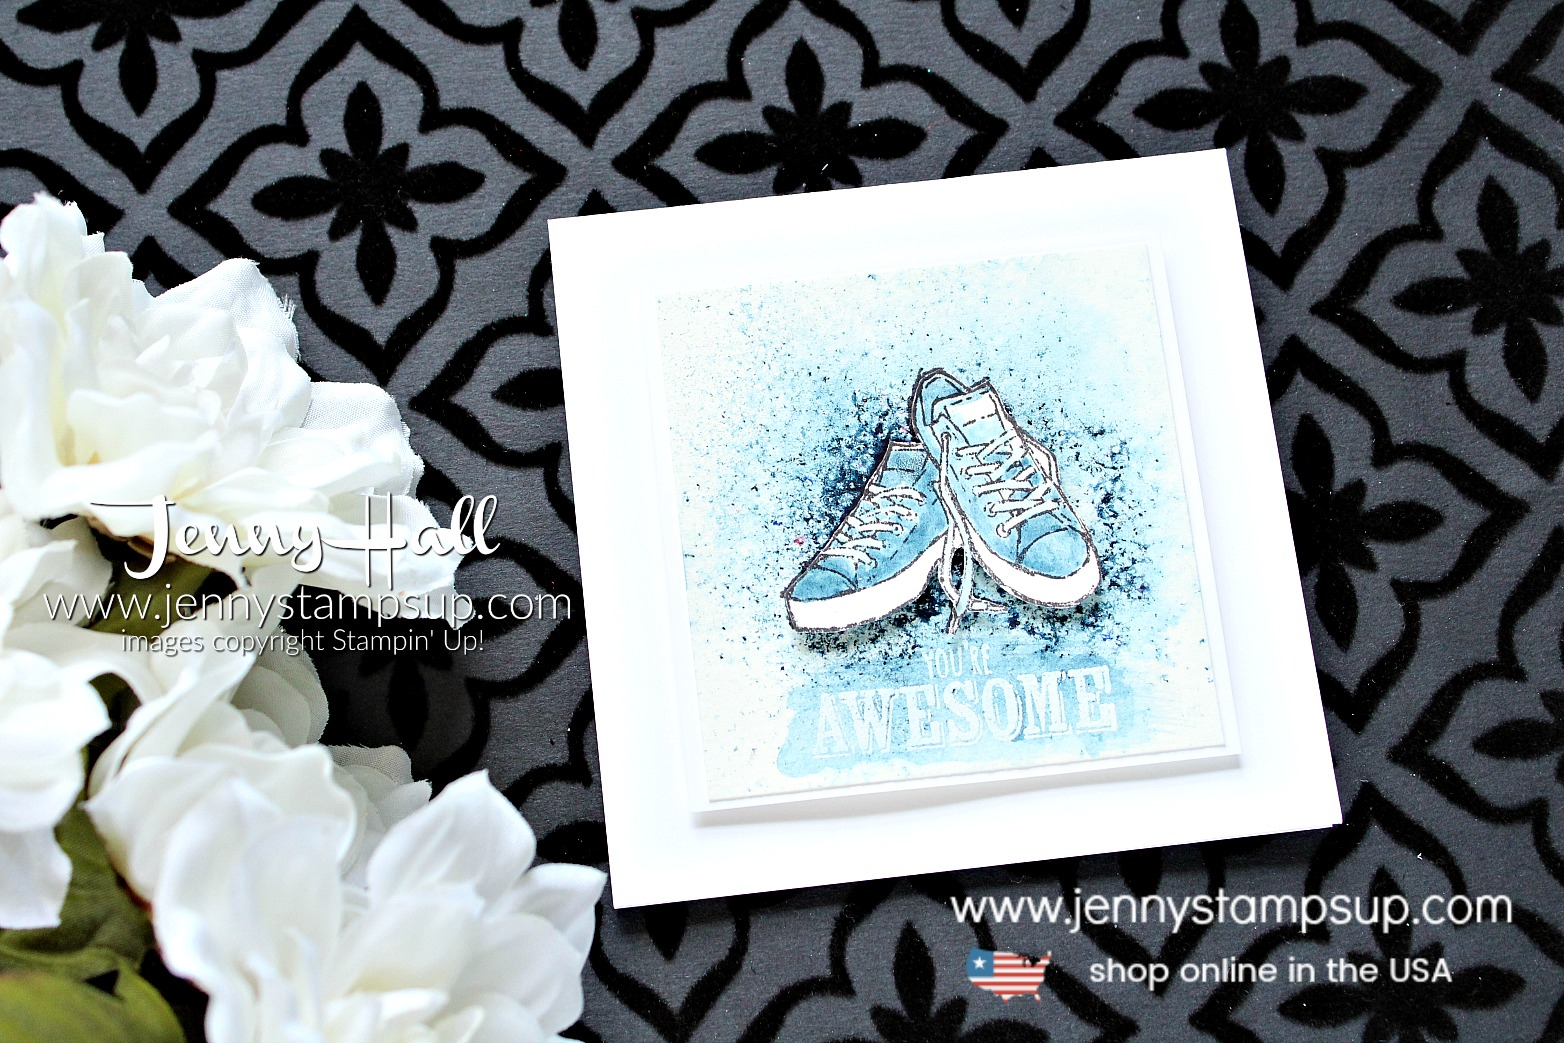 National Craft Month Blog Hop card created by Jenny Hall at www.jennyhalldesign.com for #cardmaking #bloghop #youtuber #craftyyoutuber #videotutorial #brusho #watercolor #grungetechnique #blueshoes #jennyhalldesign #jennyhall #jennystampsup #jennyhallstampinup #crafts #paperembossing #watercolorpainting #lifestyle #handmadecard #greetingcard